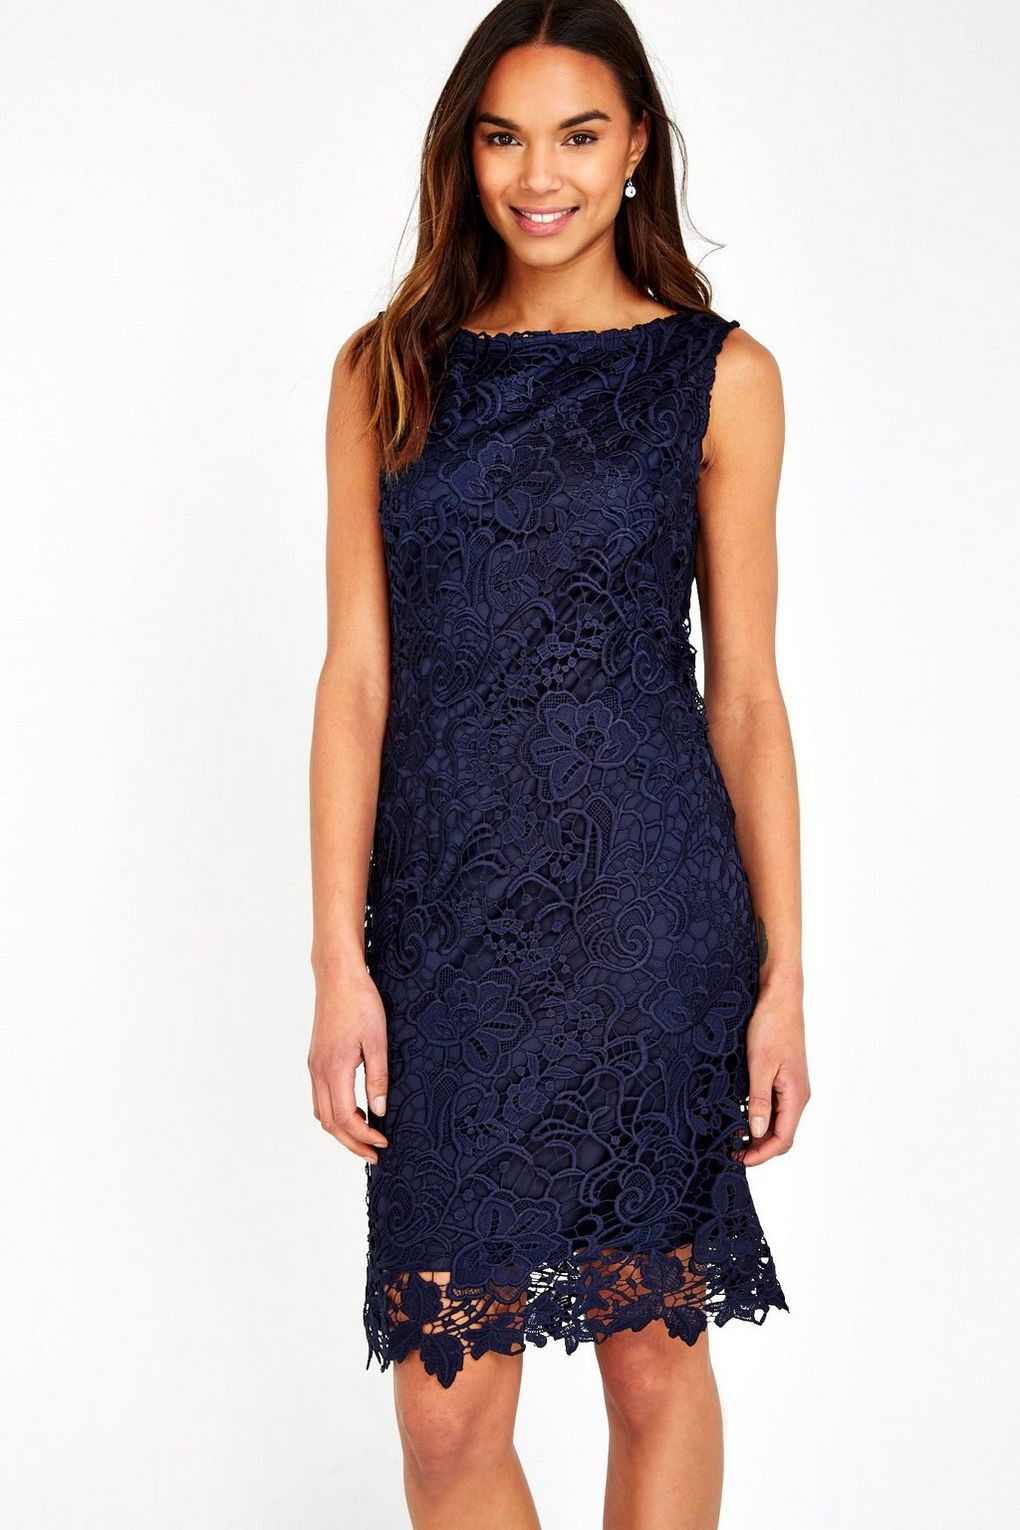 Fresh Navy Crochet Lace Shift Dress Wallis Crochet Trim Dresses Of Attractive 47 Images Crochet Trim Dresses